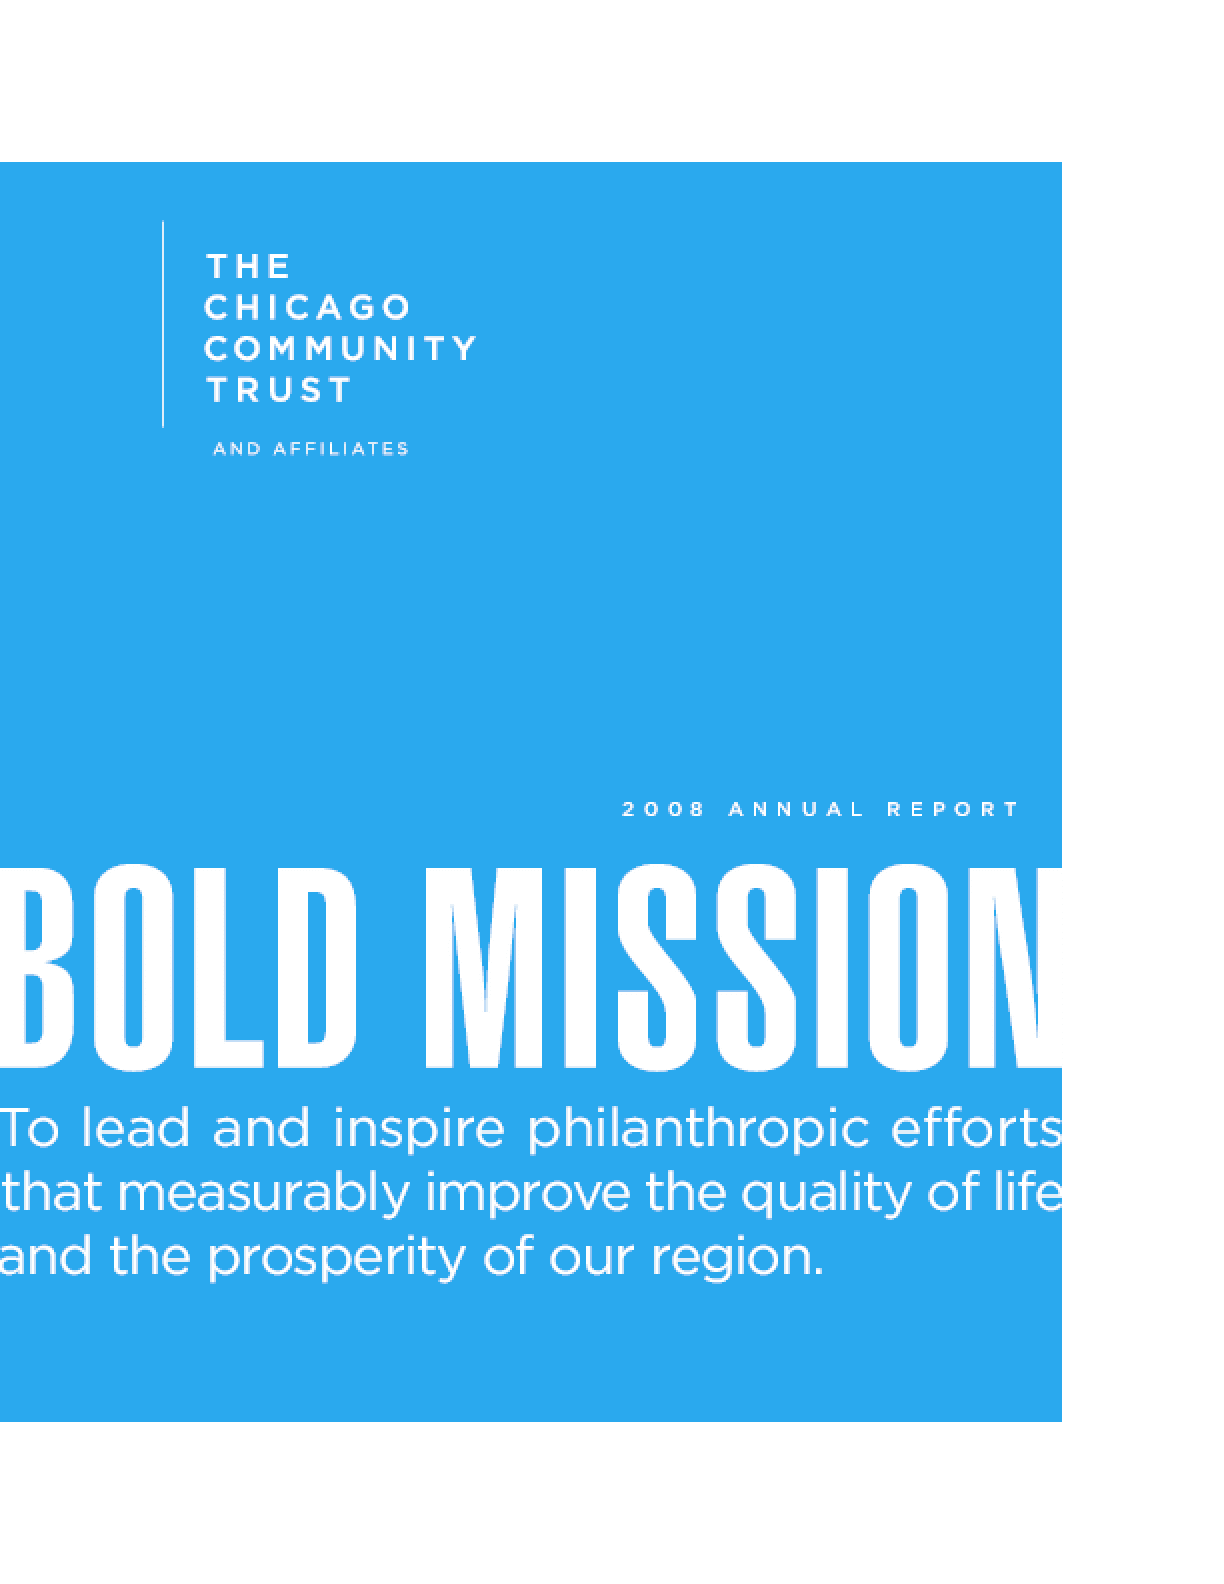 Chicago Community Trust - 2008 Annual Report